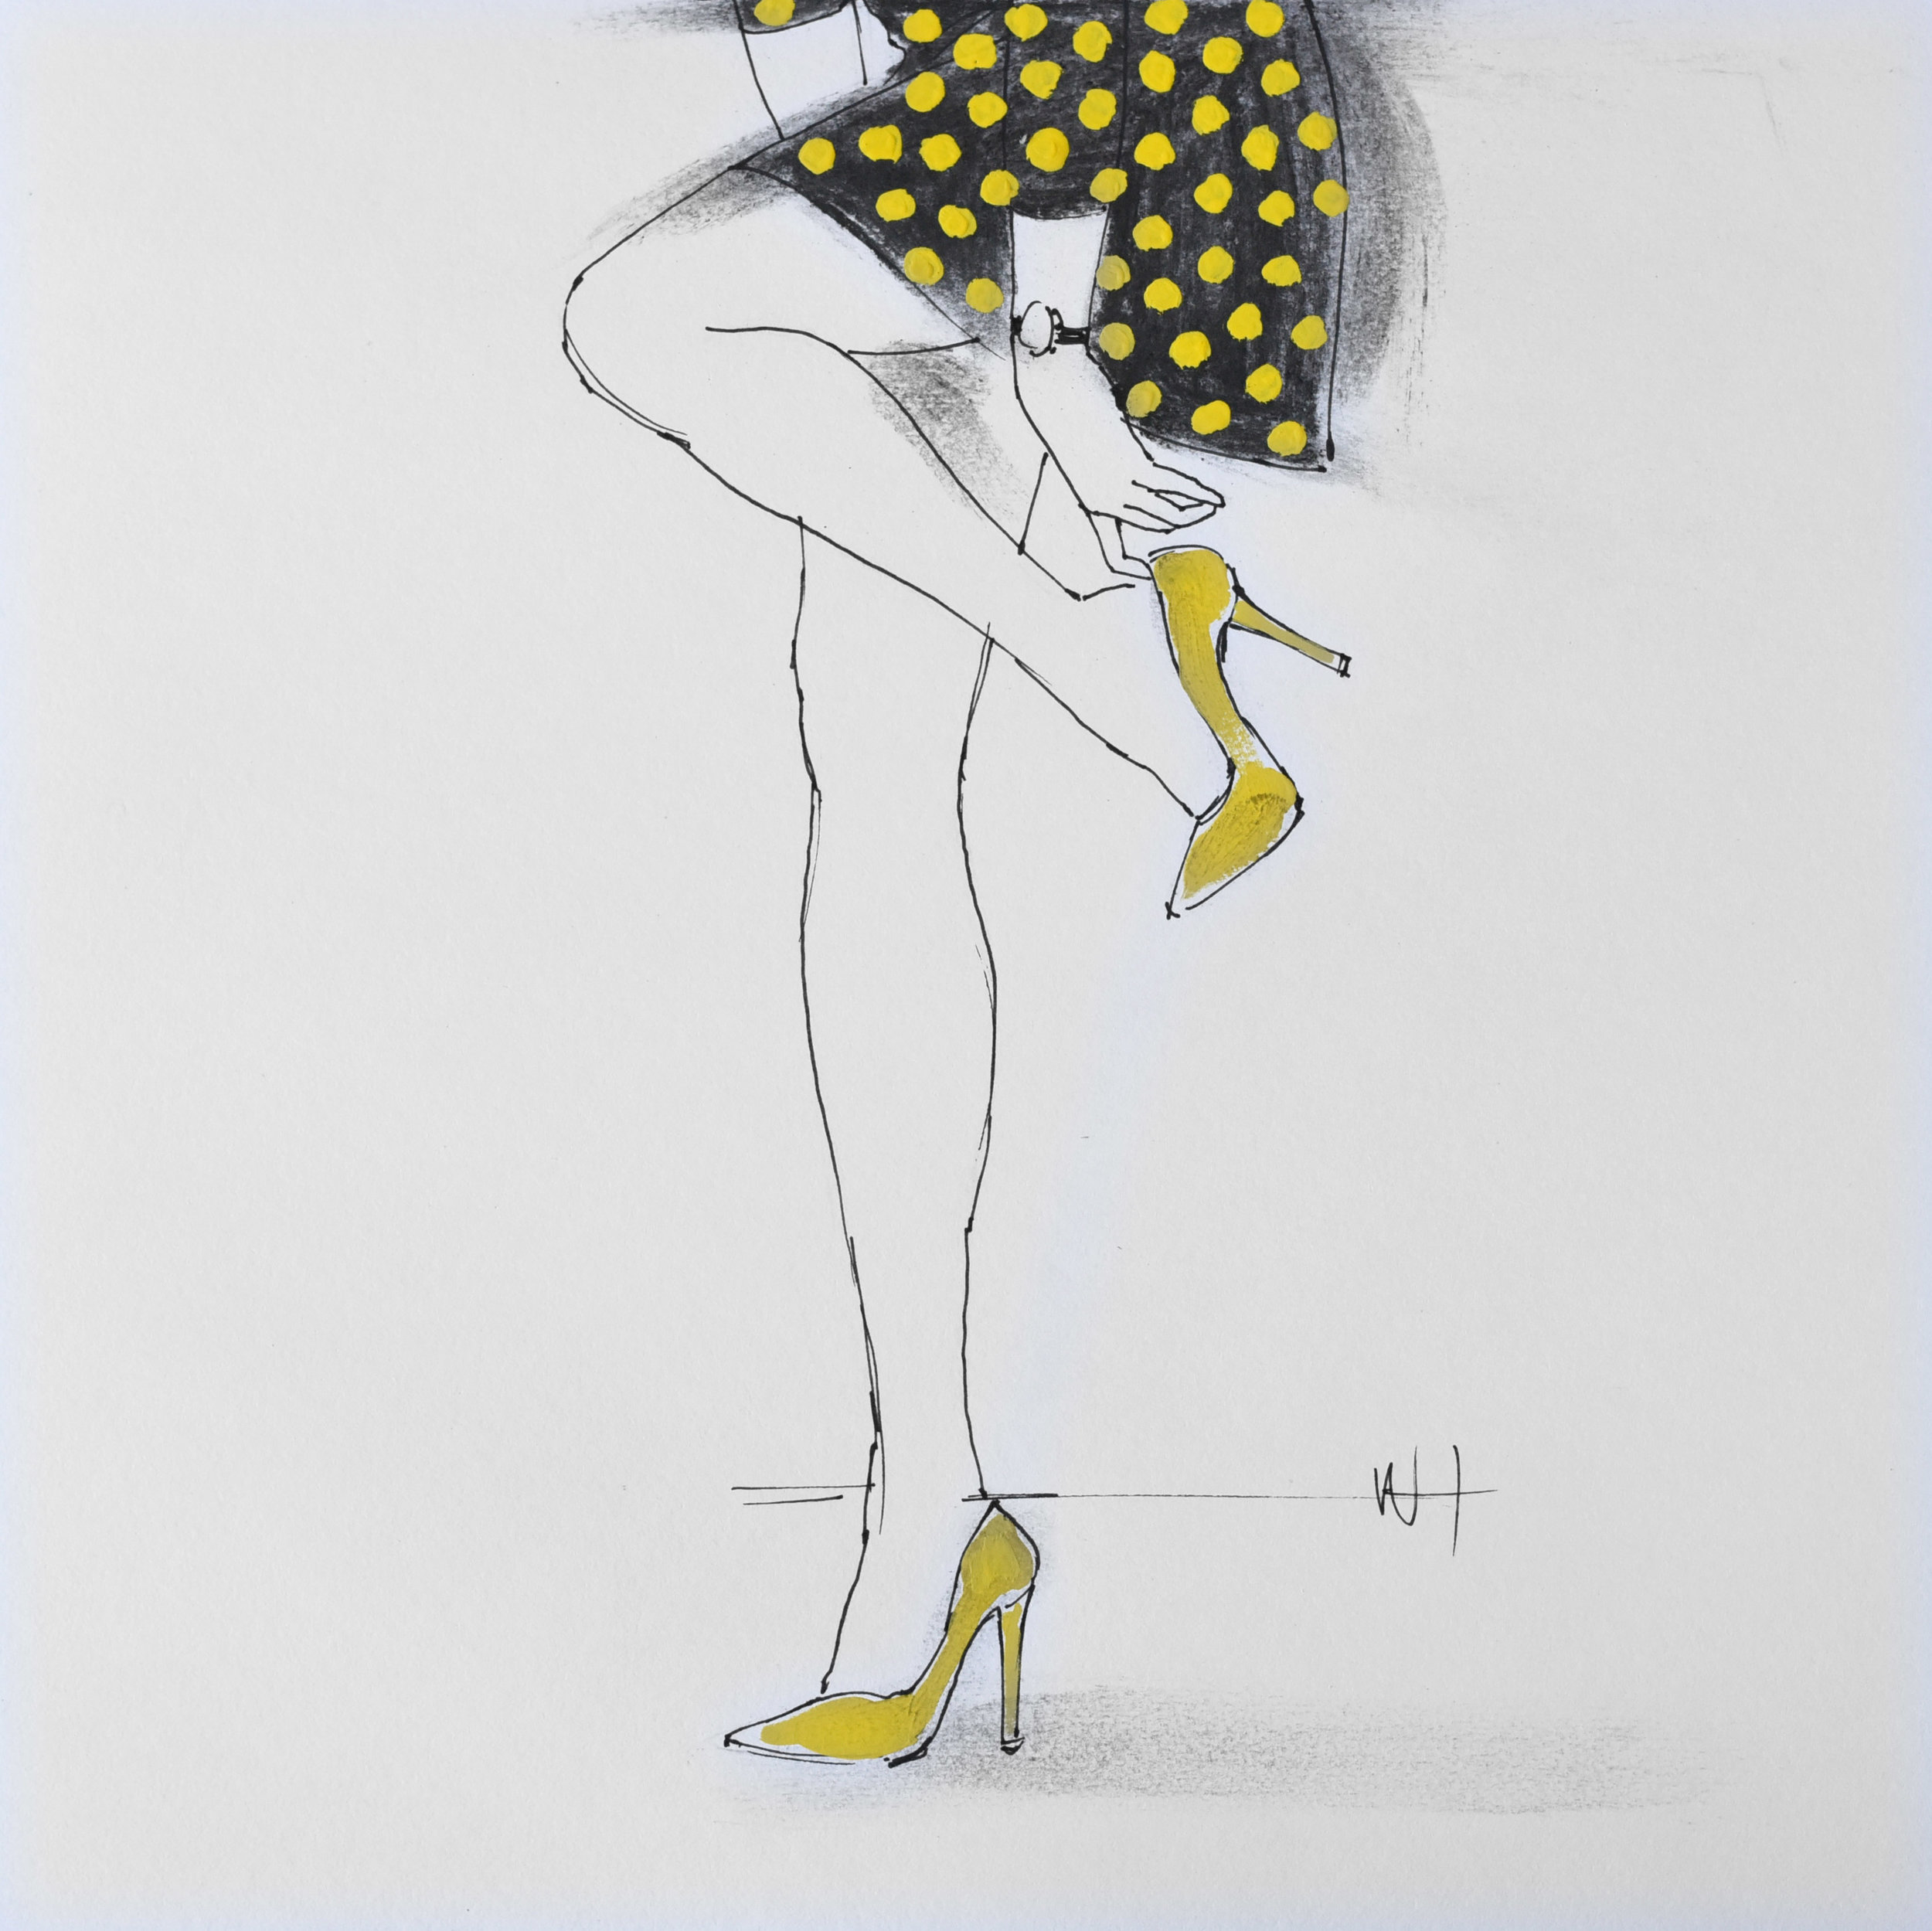 Minimal fashion illustration line drawing of a woman in a yellow polka dot dress.